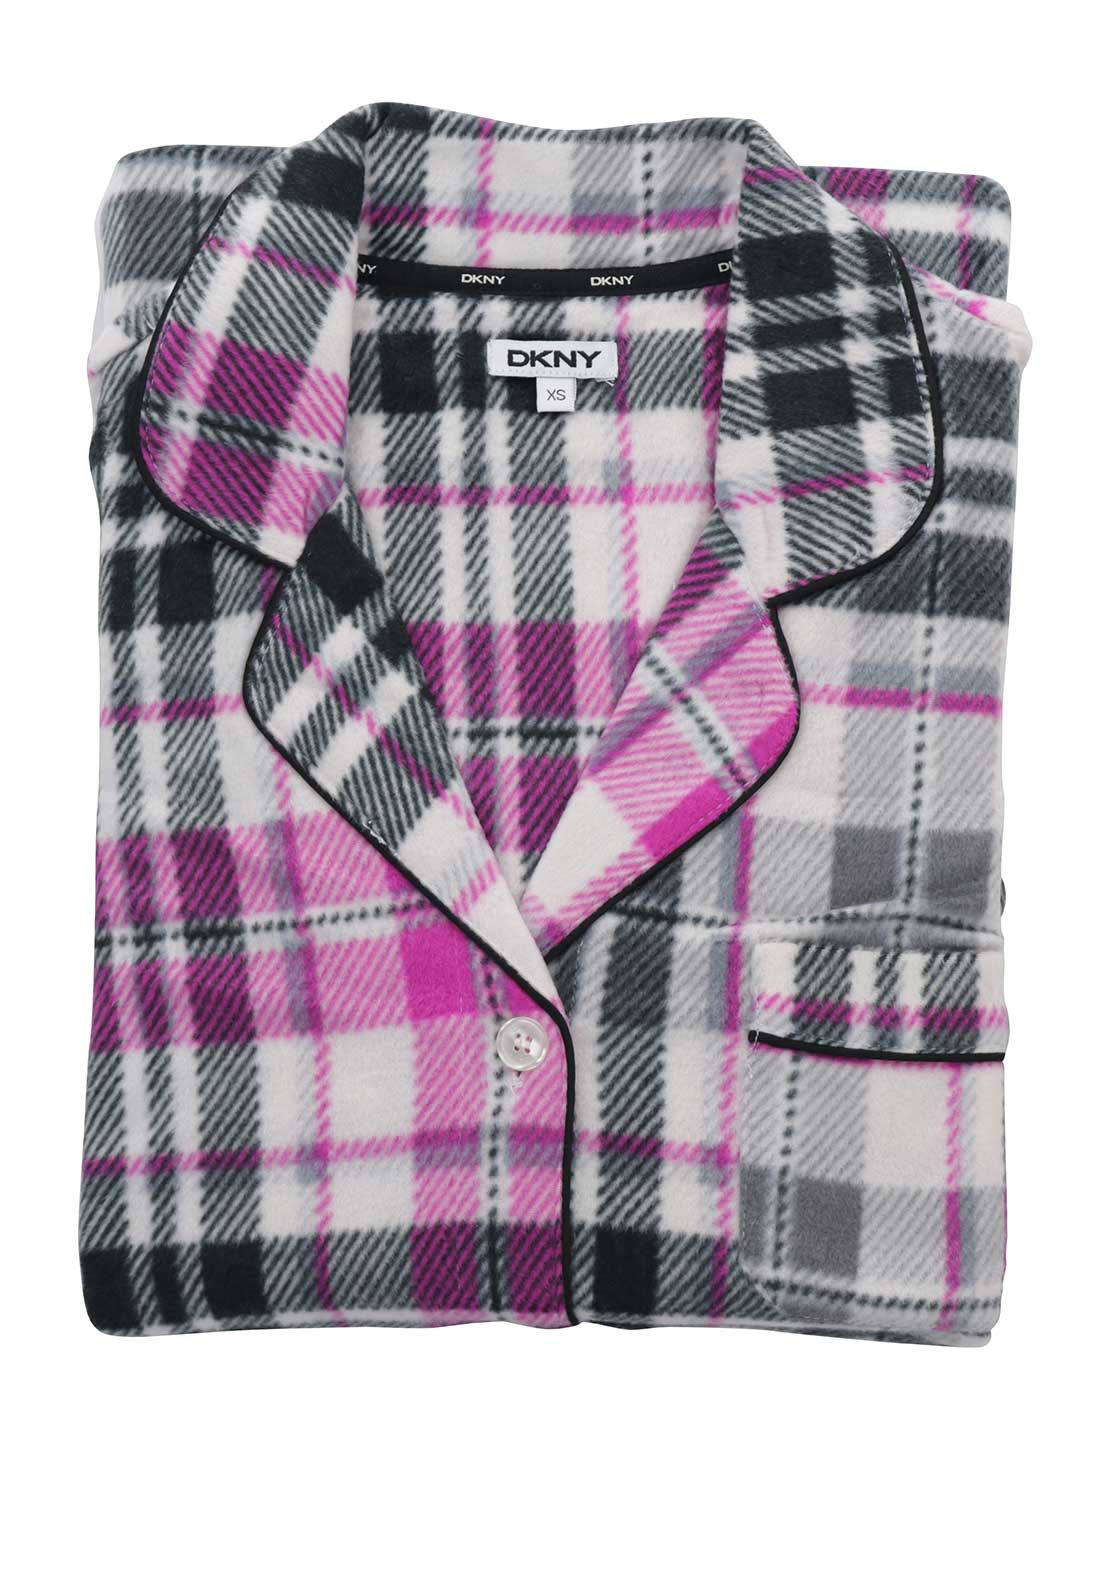 DKNY Womens Checked Fleece Pyjama Set, Multi-Coloured